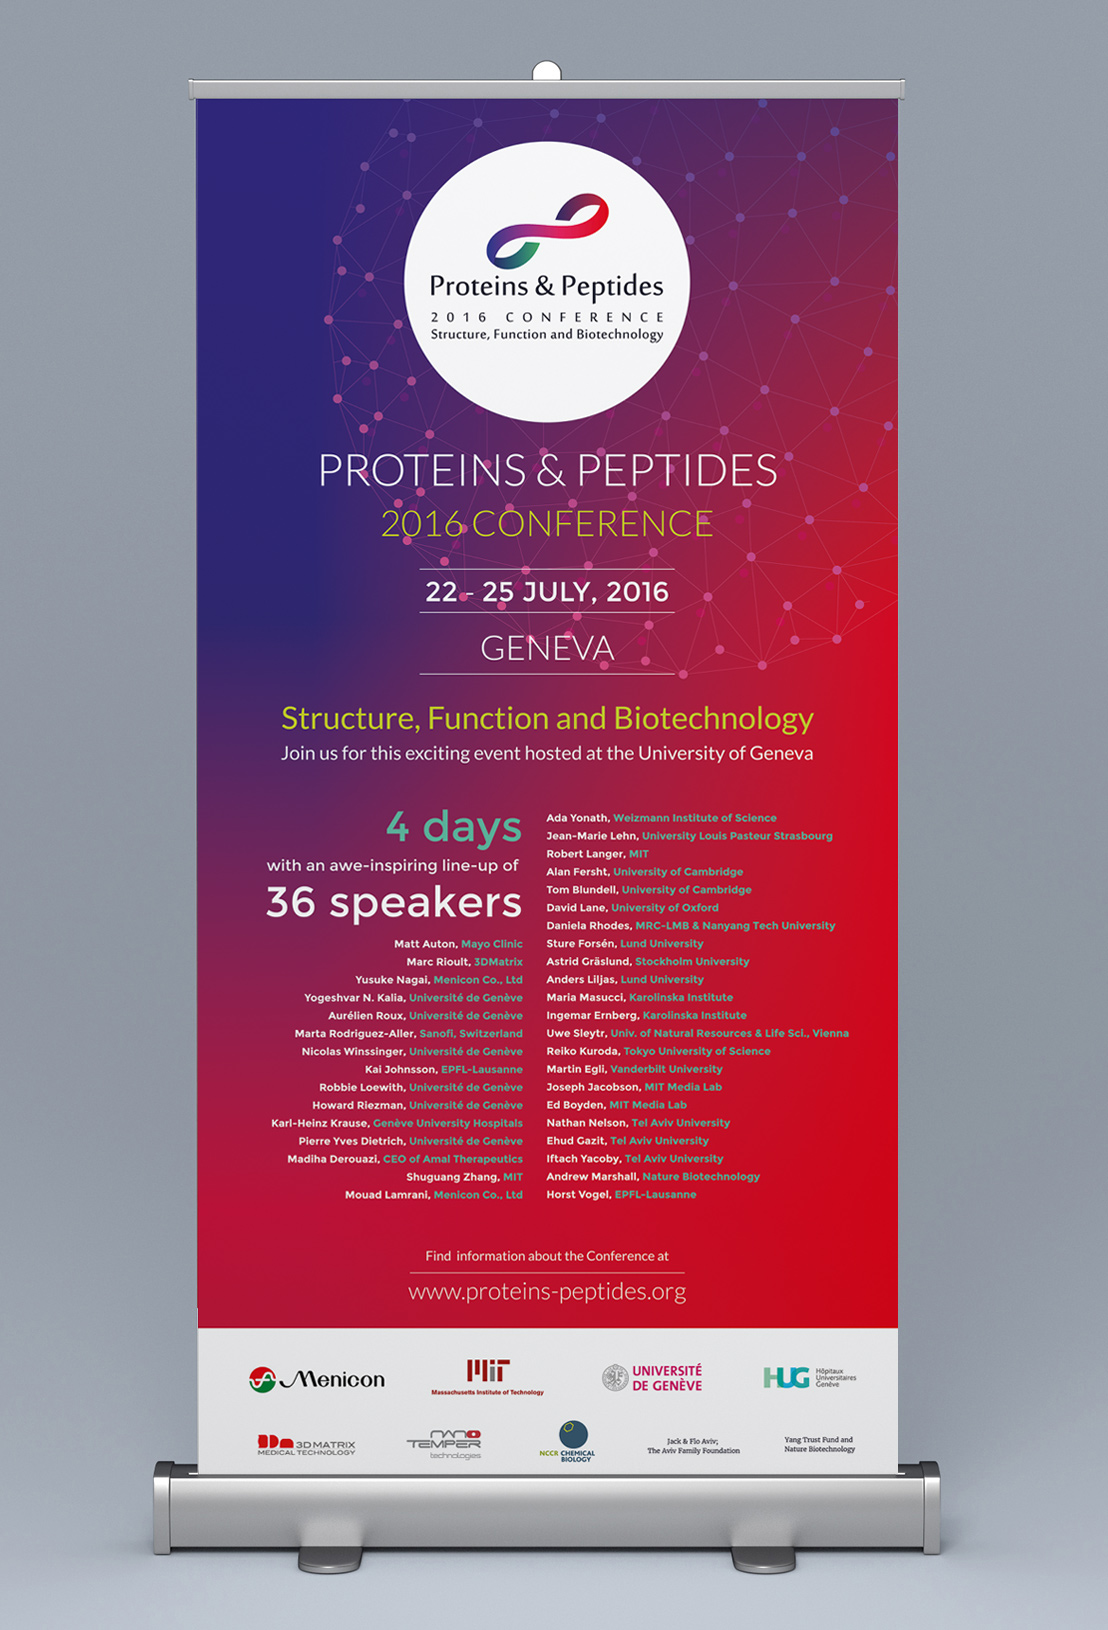 Proteins & Peptides - project image 7